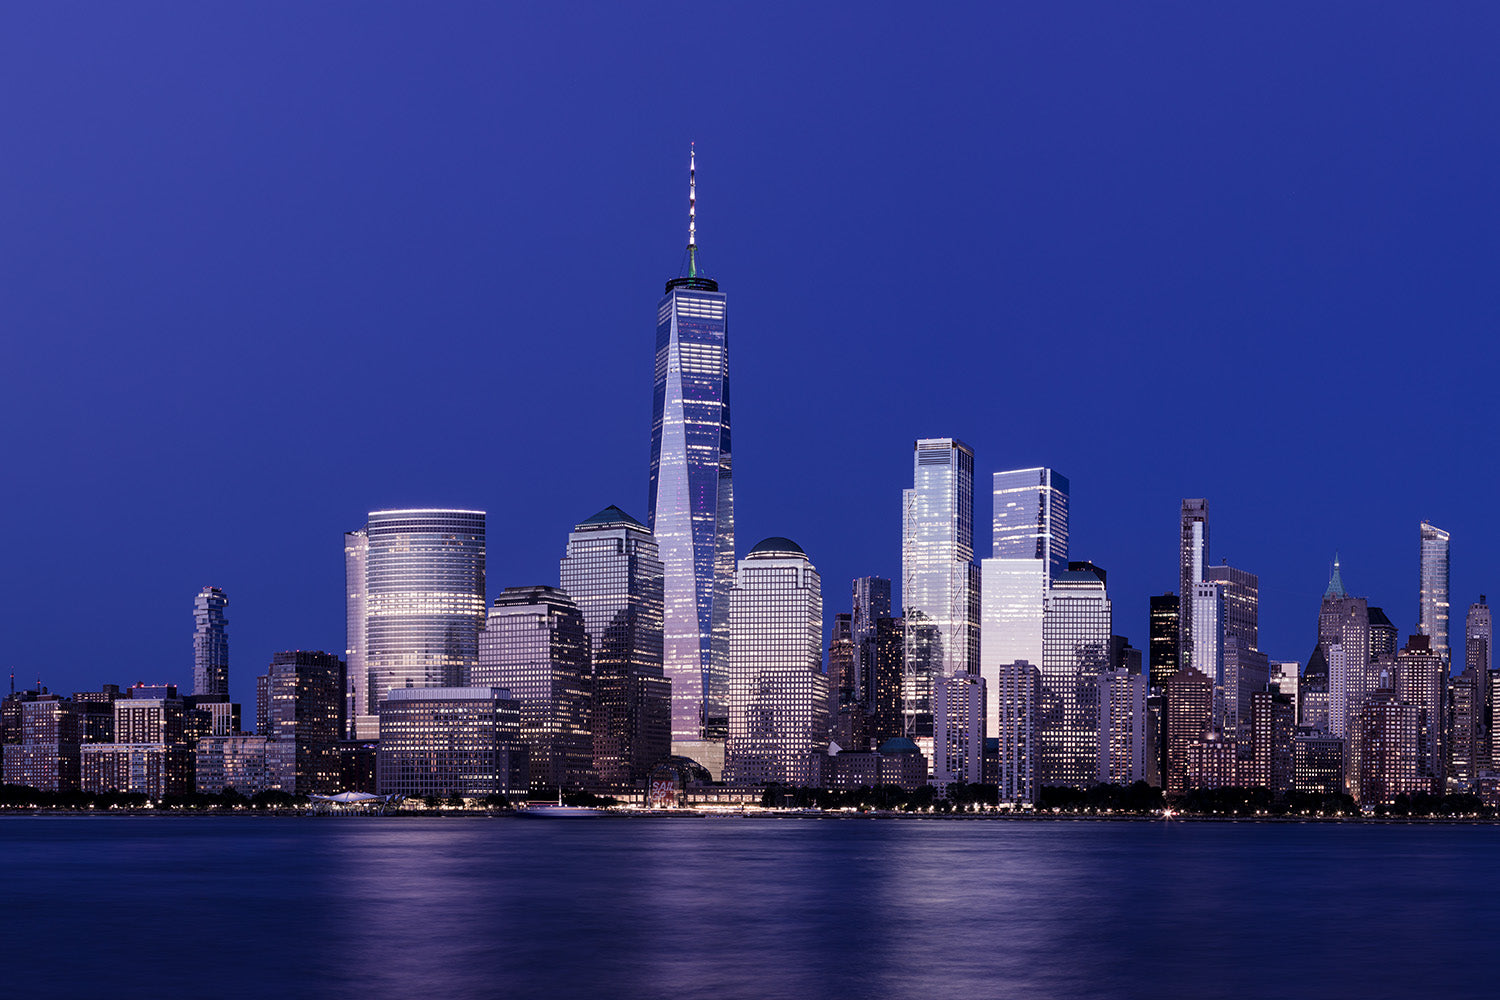 World Trade Center - Ultra High Resolution Panorama